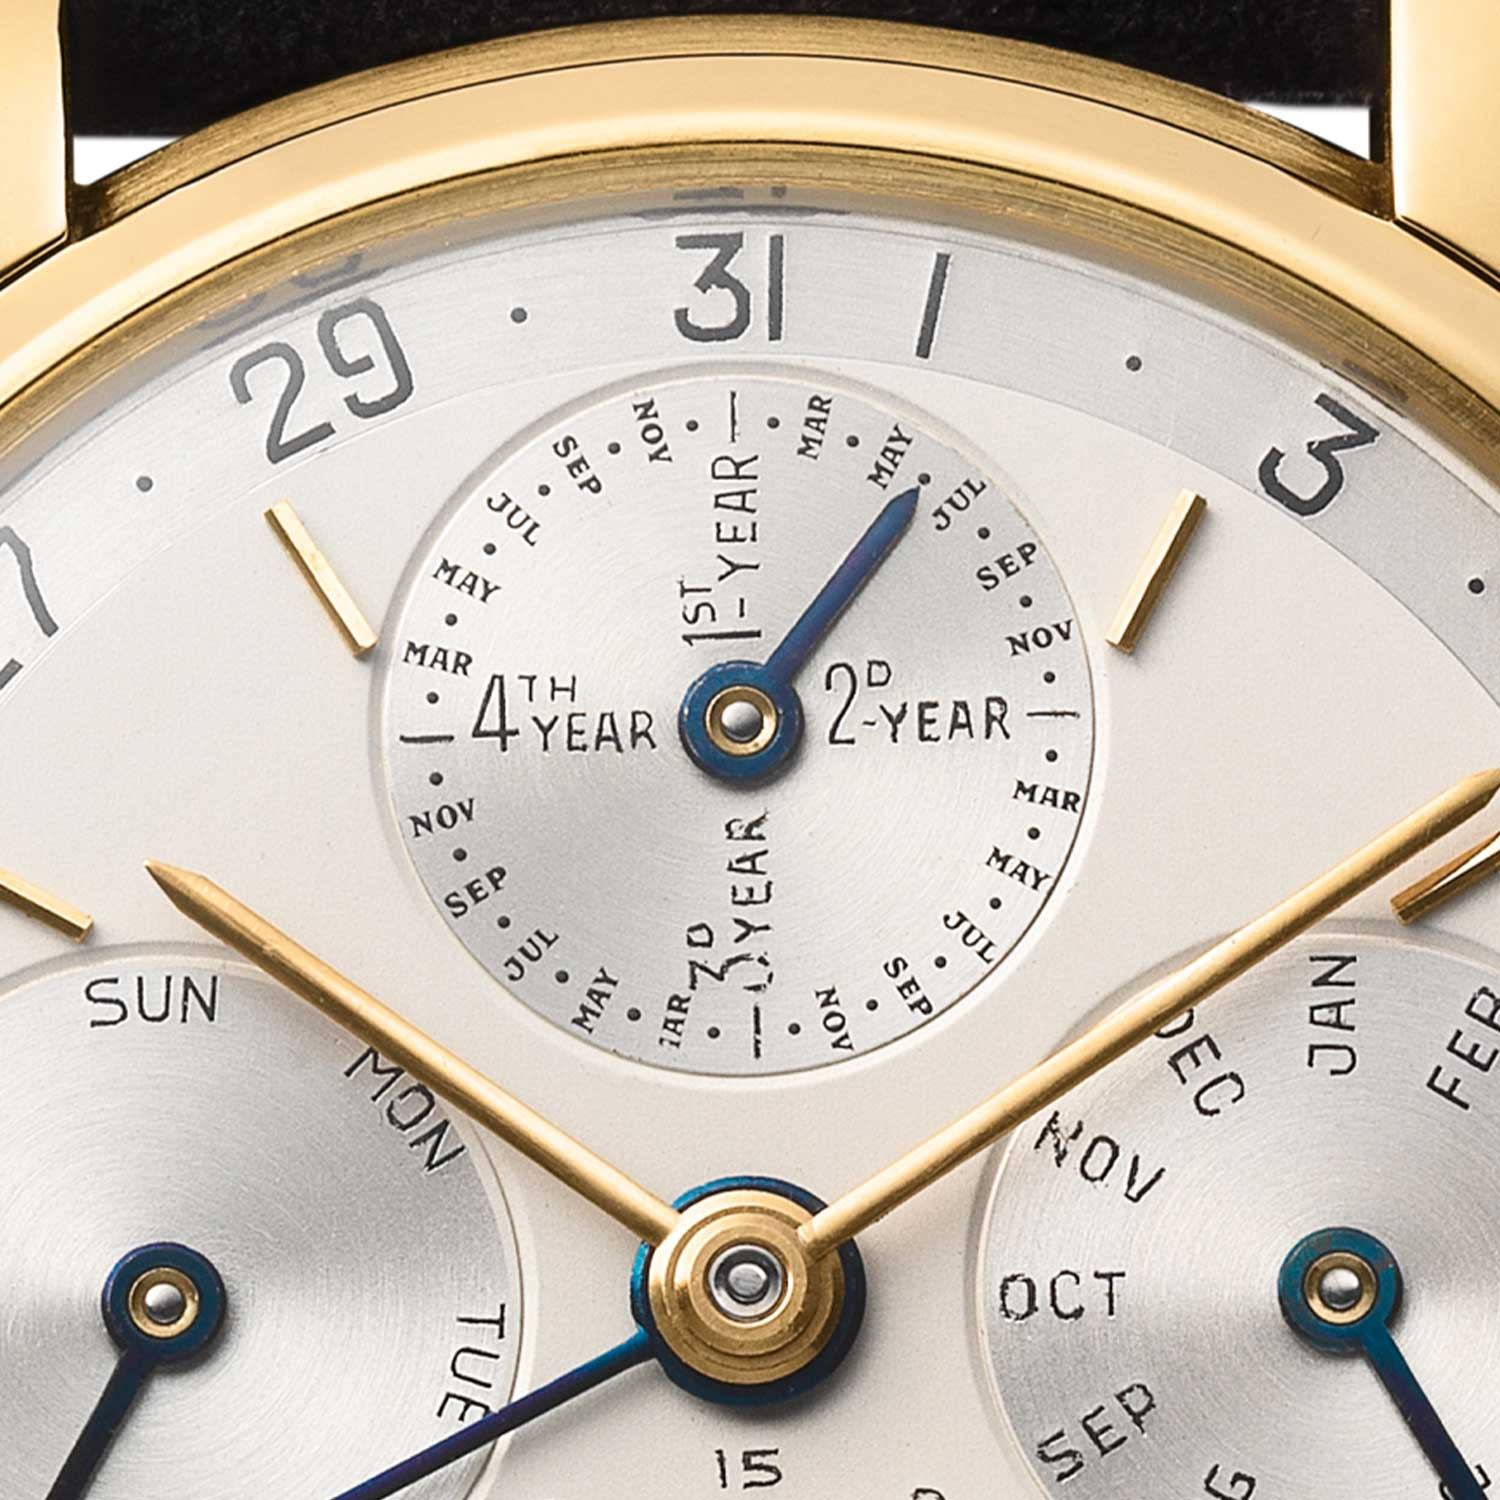 A close look at the 5516, with the combined leap year and month indication at 12 o'clock, which was made in 1957, watch sold in 1968 to Vacheron Constantin (Genève). Audemars Piguet Heritage Collection, Inv. 1716.